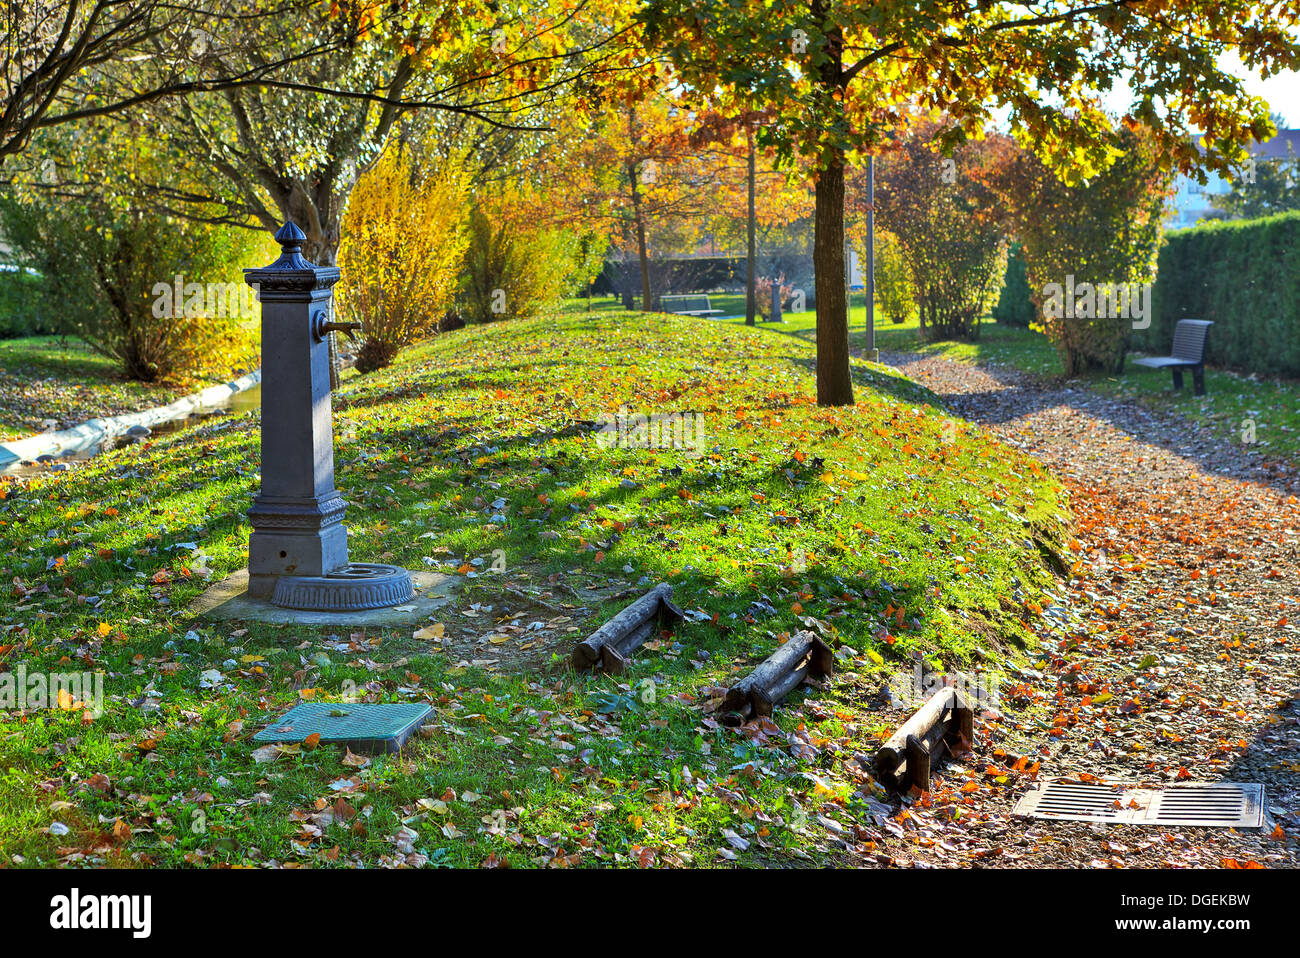 Metal water pump on the grass in small city park in autumn. - Stock Image